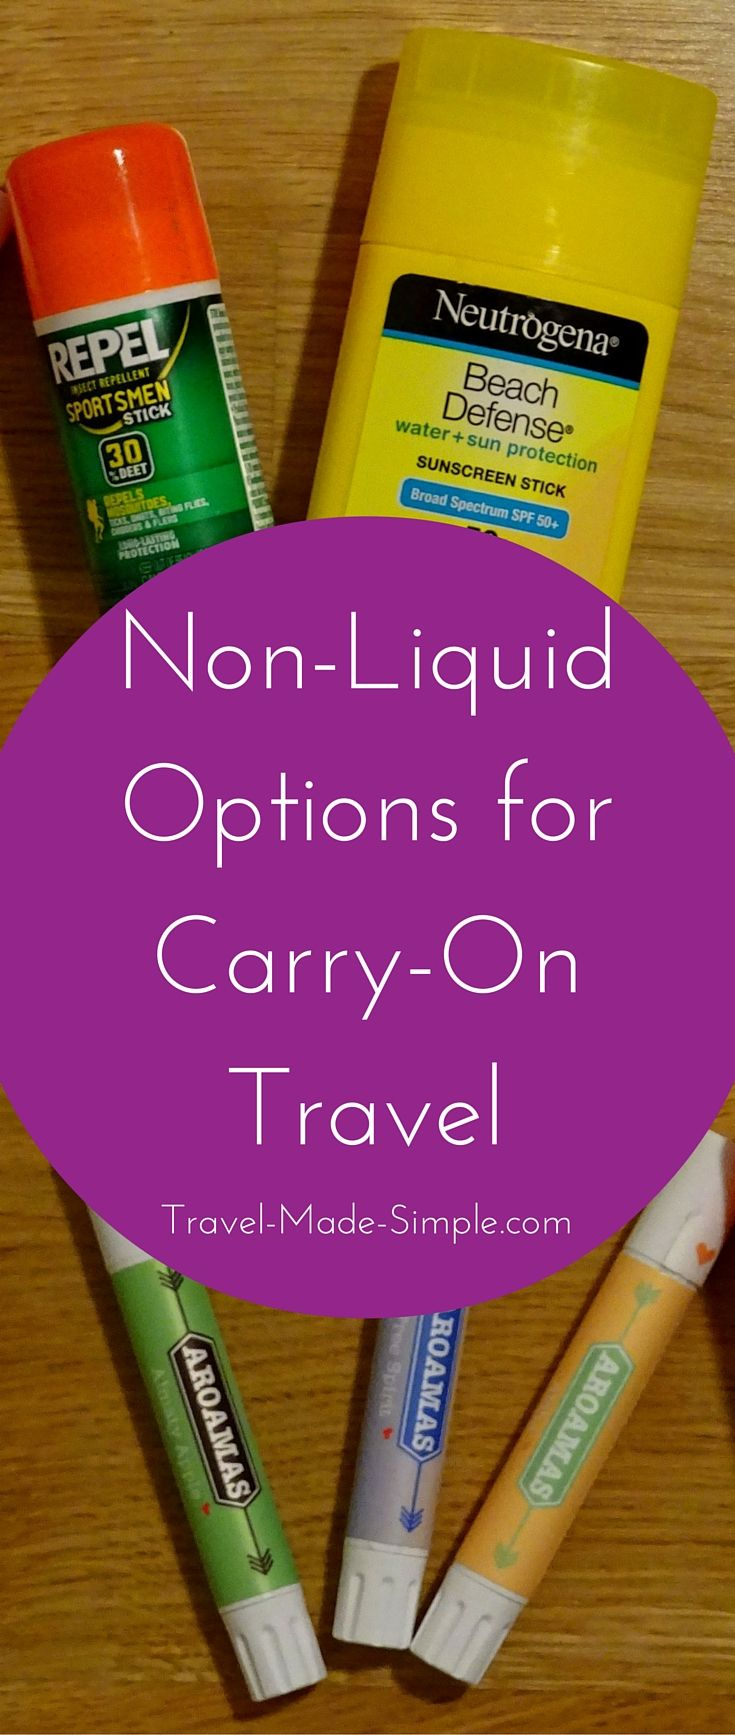 Liquids restrictions can put a damper on your efforts to travel carry-on only. But there are tons of solid non-liquid options to help make it easier. Solid perfume, solid shampoo, even solid sunscreen and solid bug repellent are great alternatives to the liquid versions.